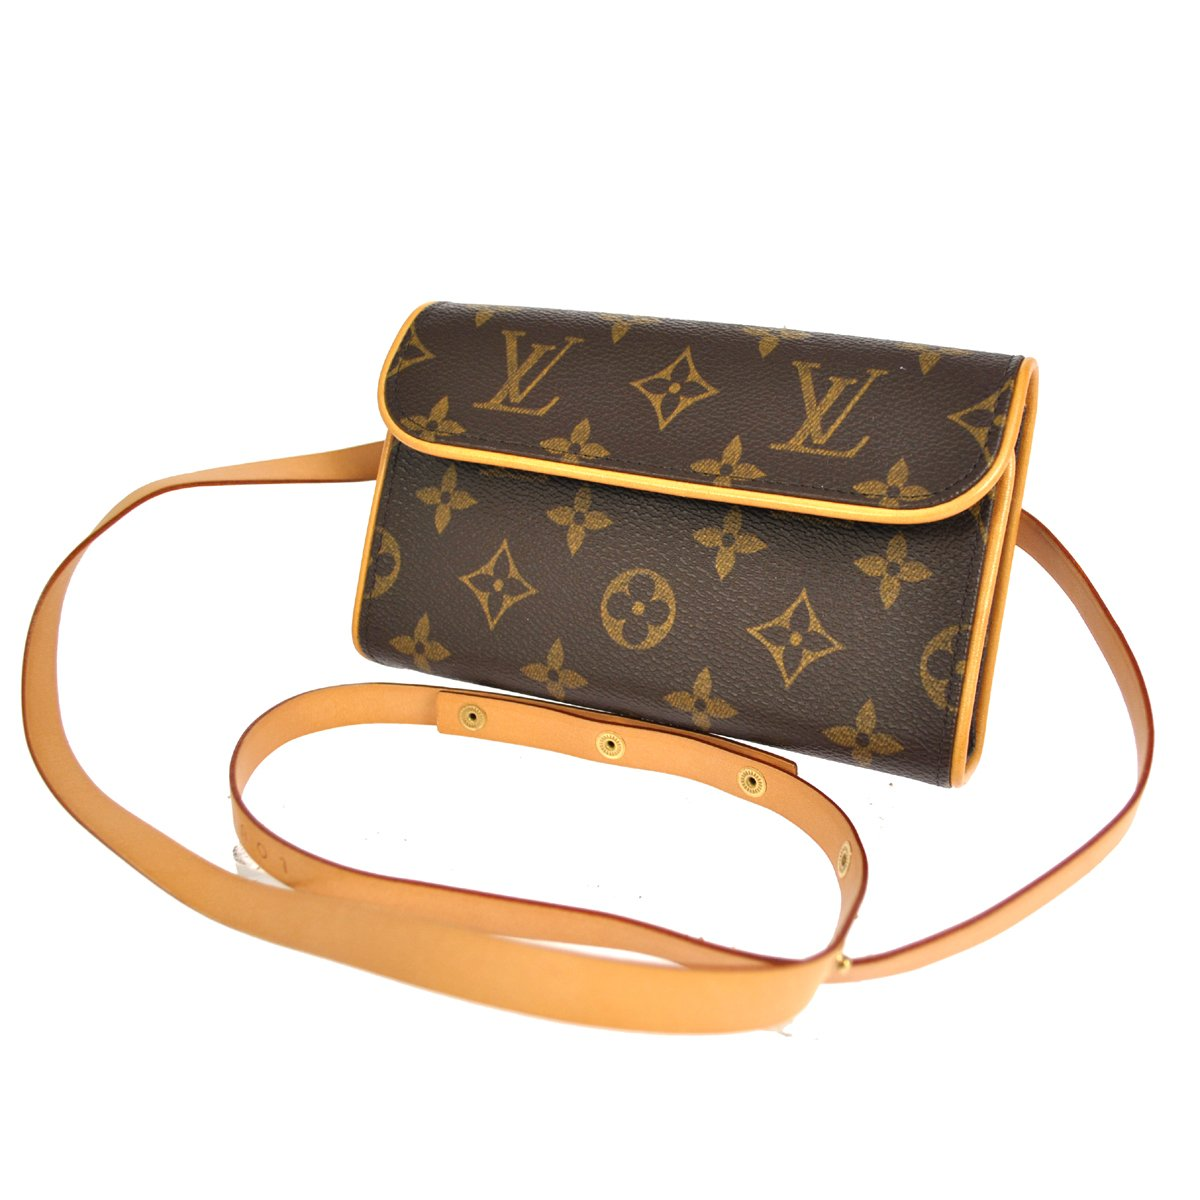 sold - authentic louis vuitton pochette florentine pouch bum  belt bag